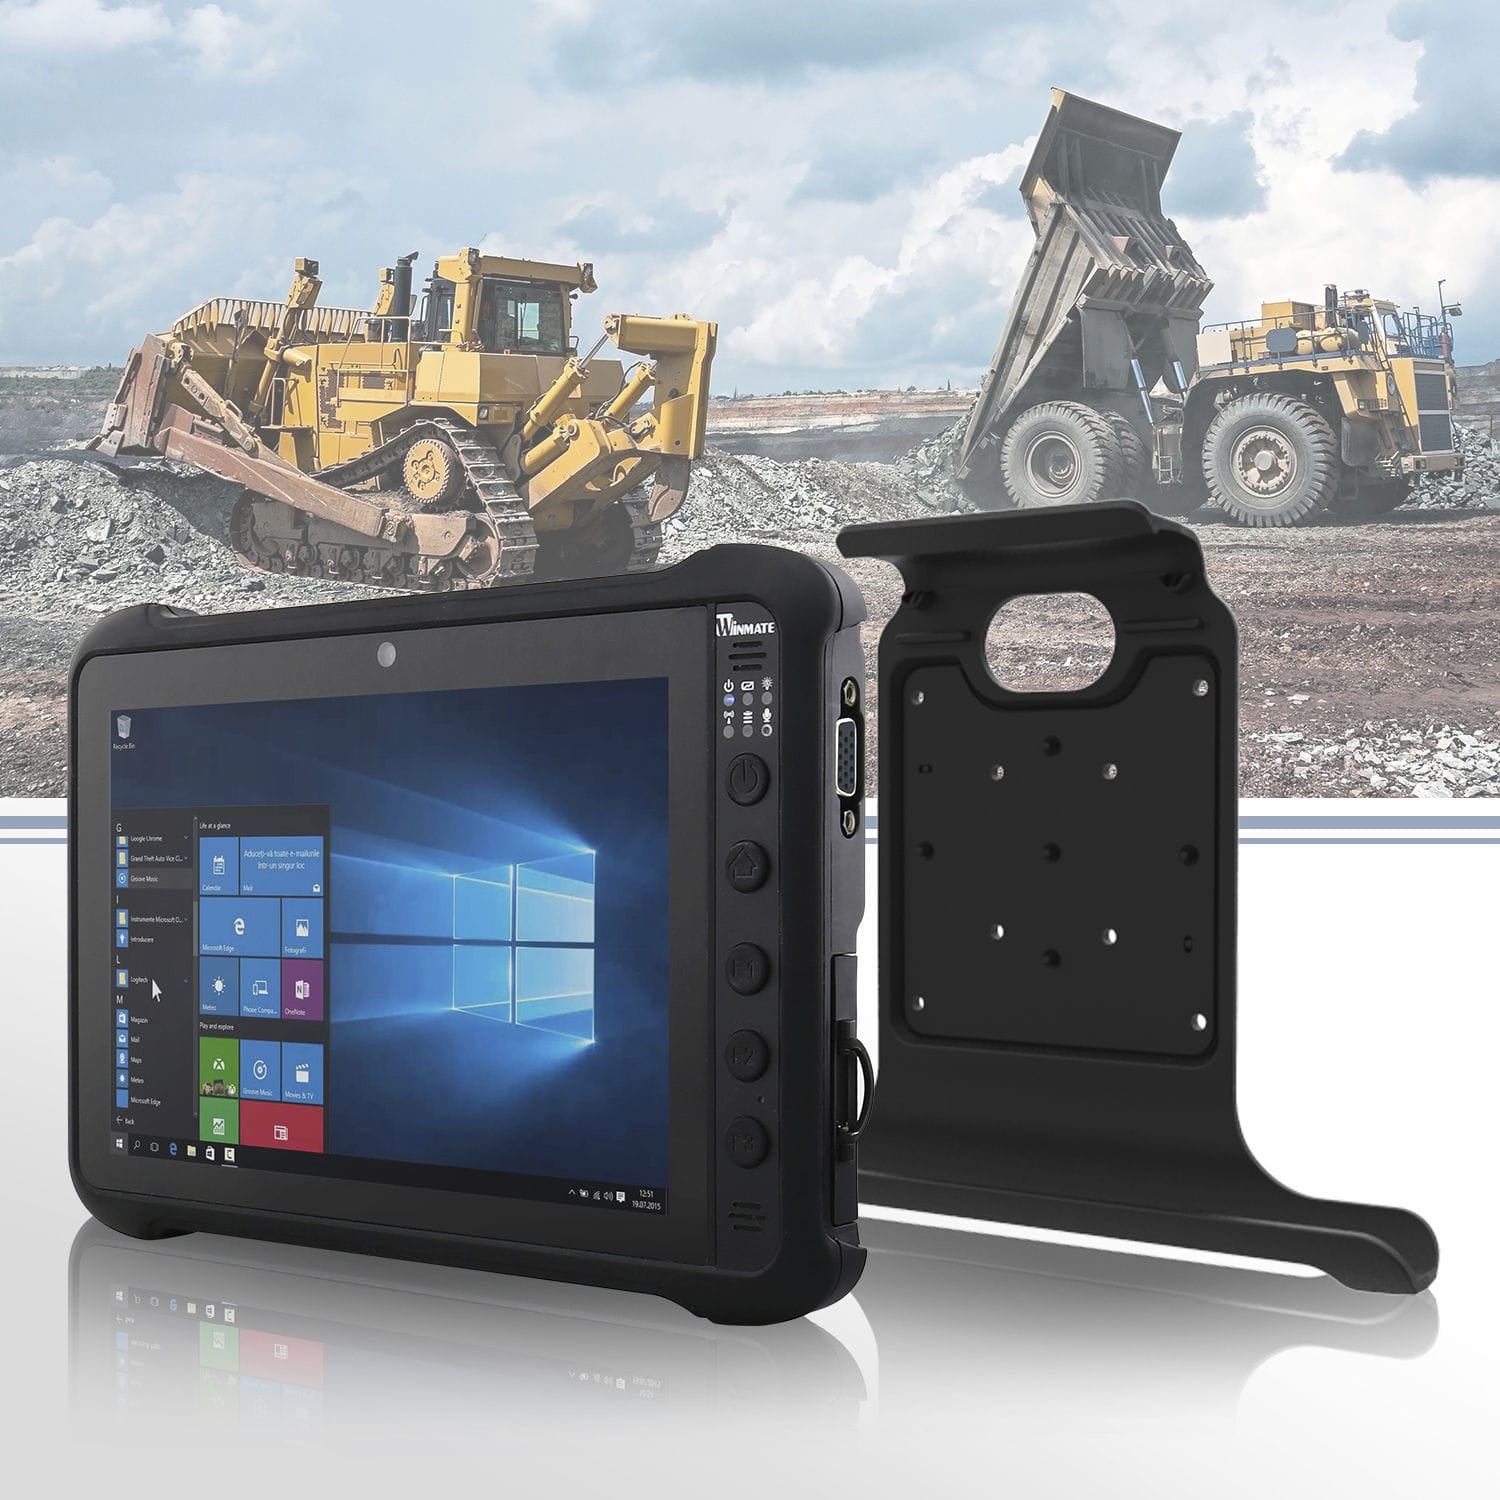 Rugged Tablet Windows 8 Intel Pentium M900p